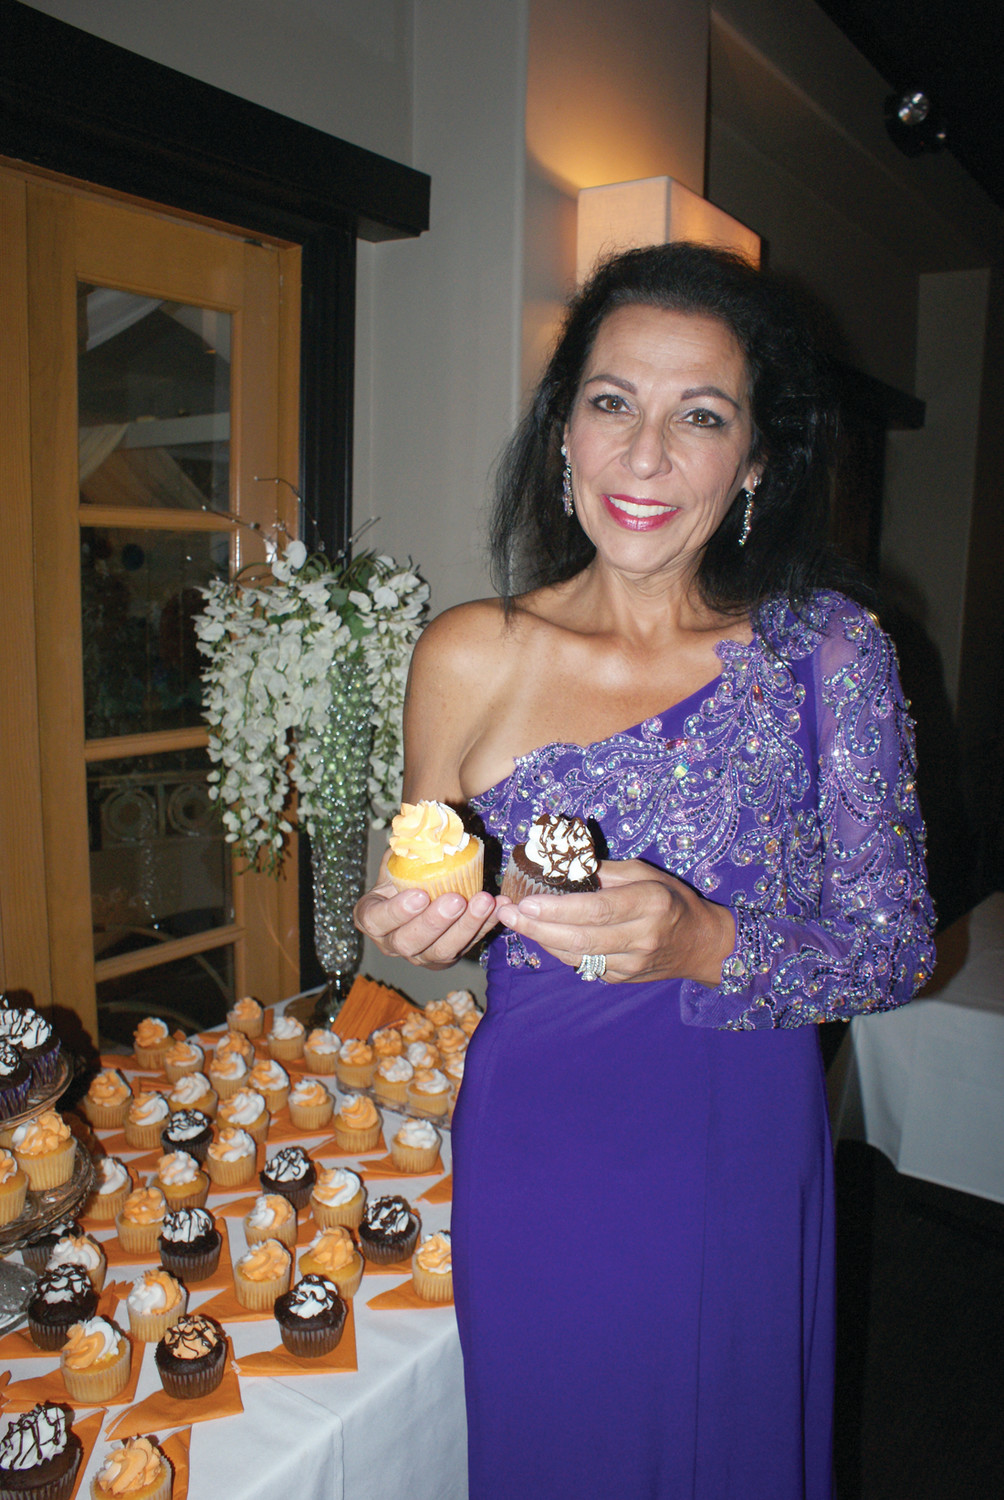 HOW SWEET IT IS: Spain Restaurant in Cranston will host the 2nd Annual Eric Medeiros Memorial Foundation Fundraising Gala on Sept. 4. Organized by Anna Casador who is pictured last year with her homemade cupcakes at the first gala, the event is in memory of her son Eric Medeiros who suffered a traumatic brain injury during a car crash in 2007. This year, Casador, will also be providing her sweet treats for dessert at the event.